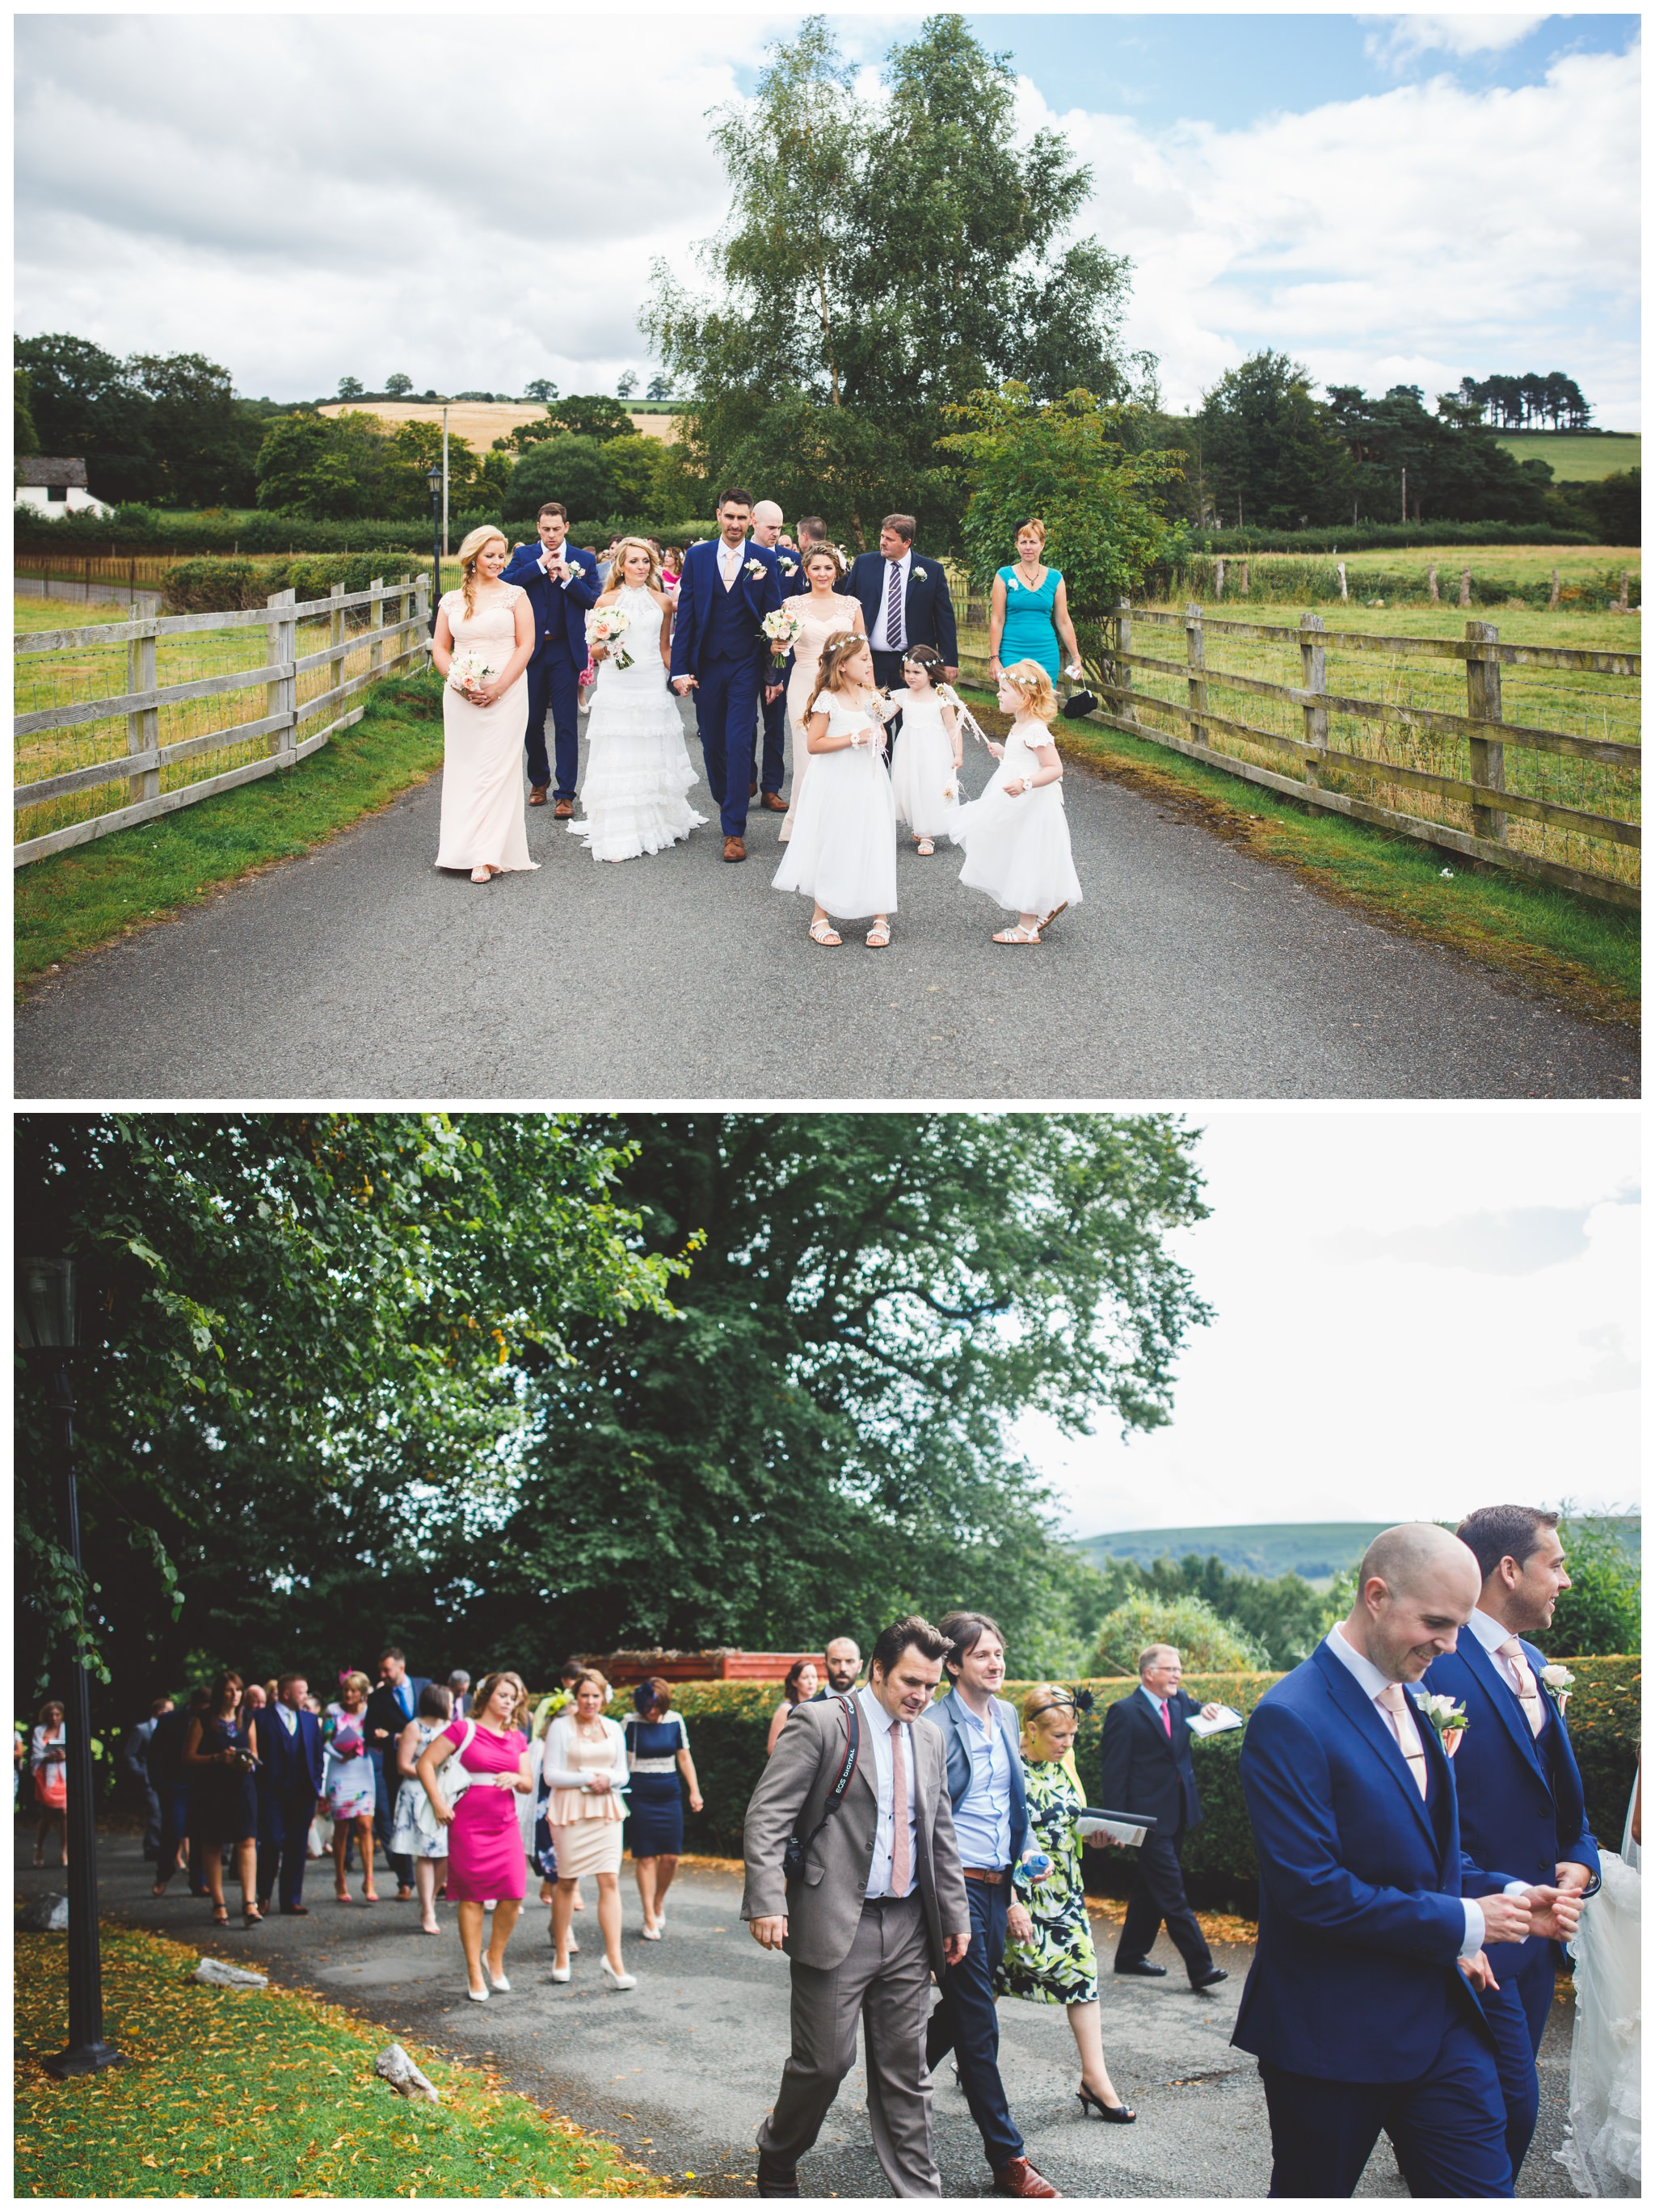 Richard Savage Photography - Wedding - Peterstone Court Brecon - 2016-05-11_0031